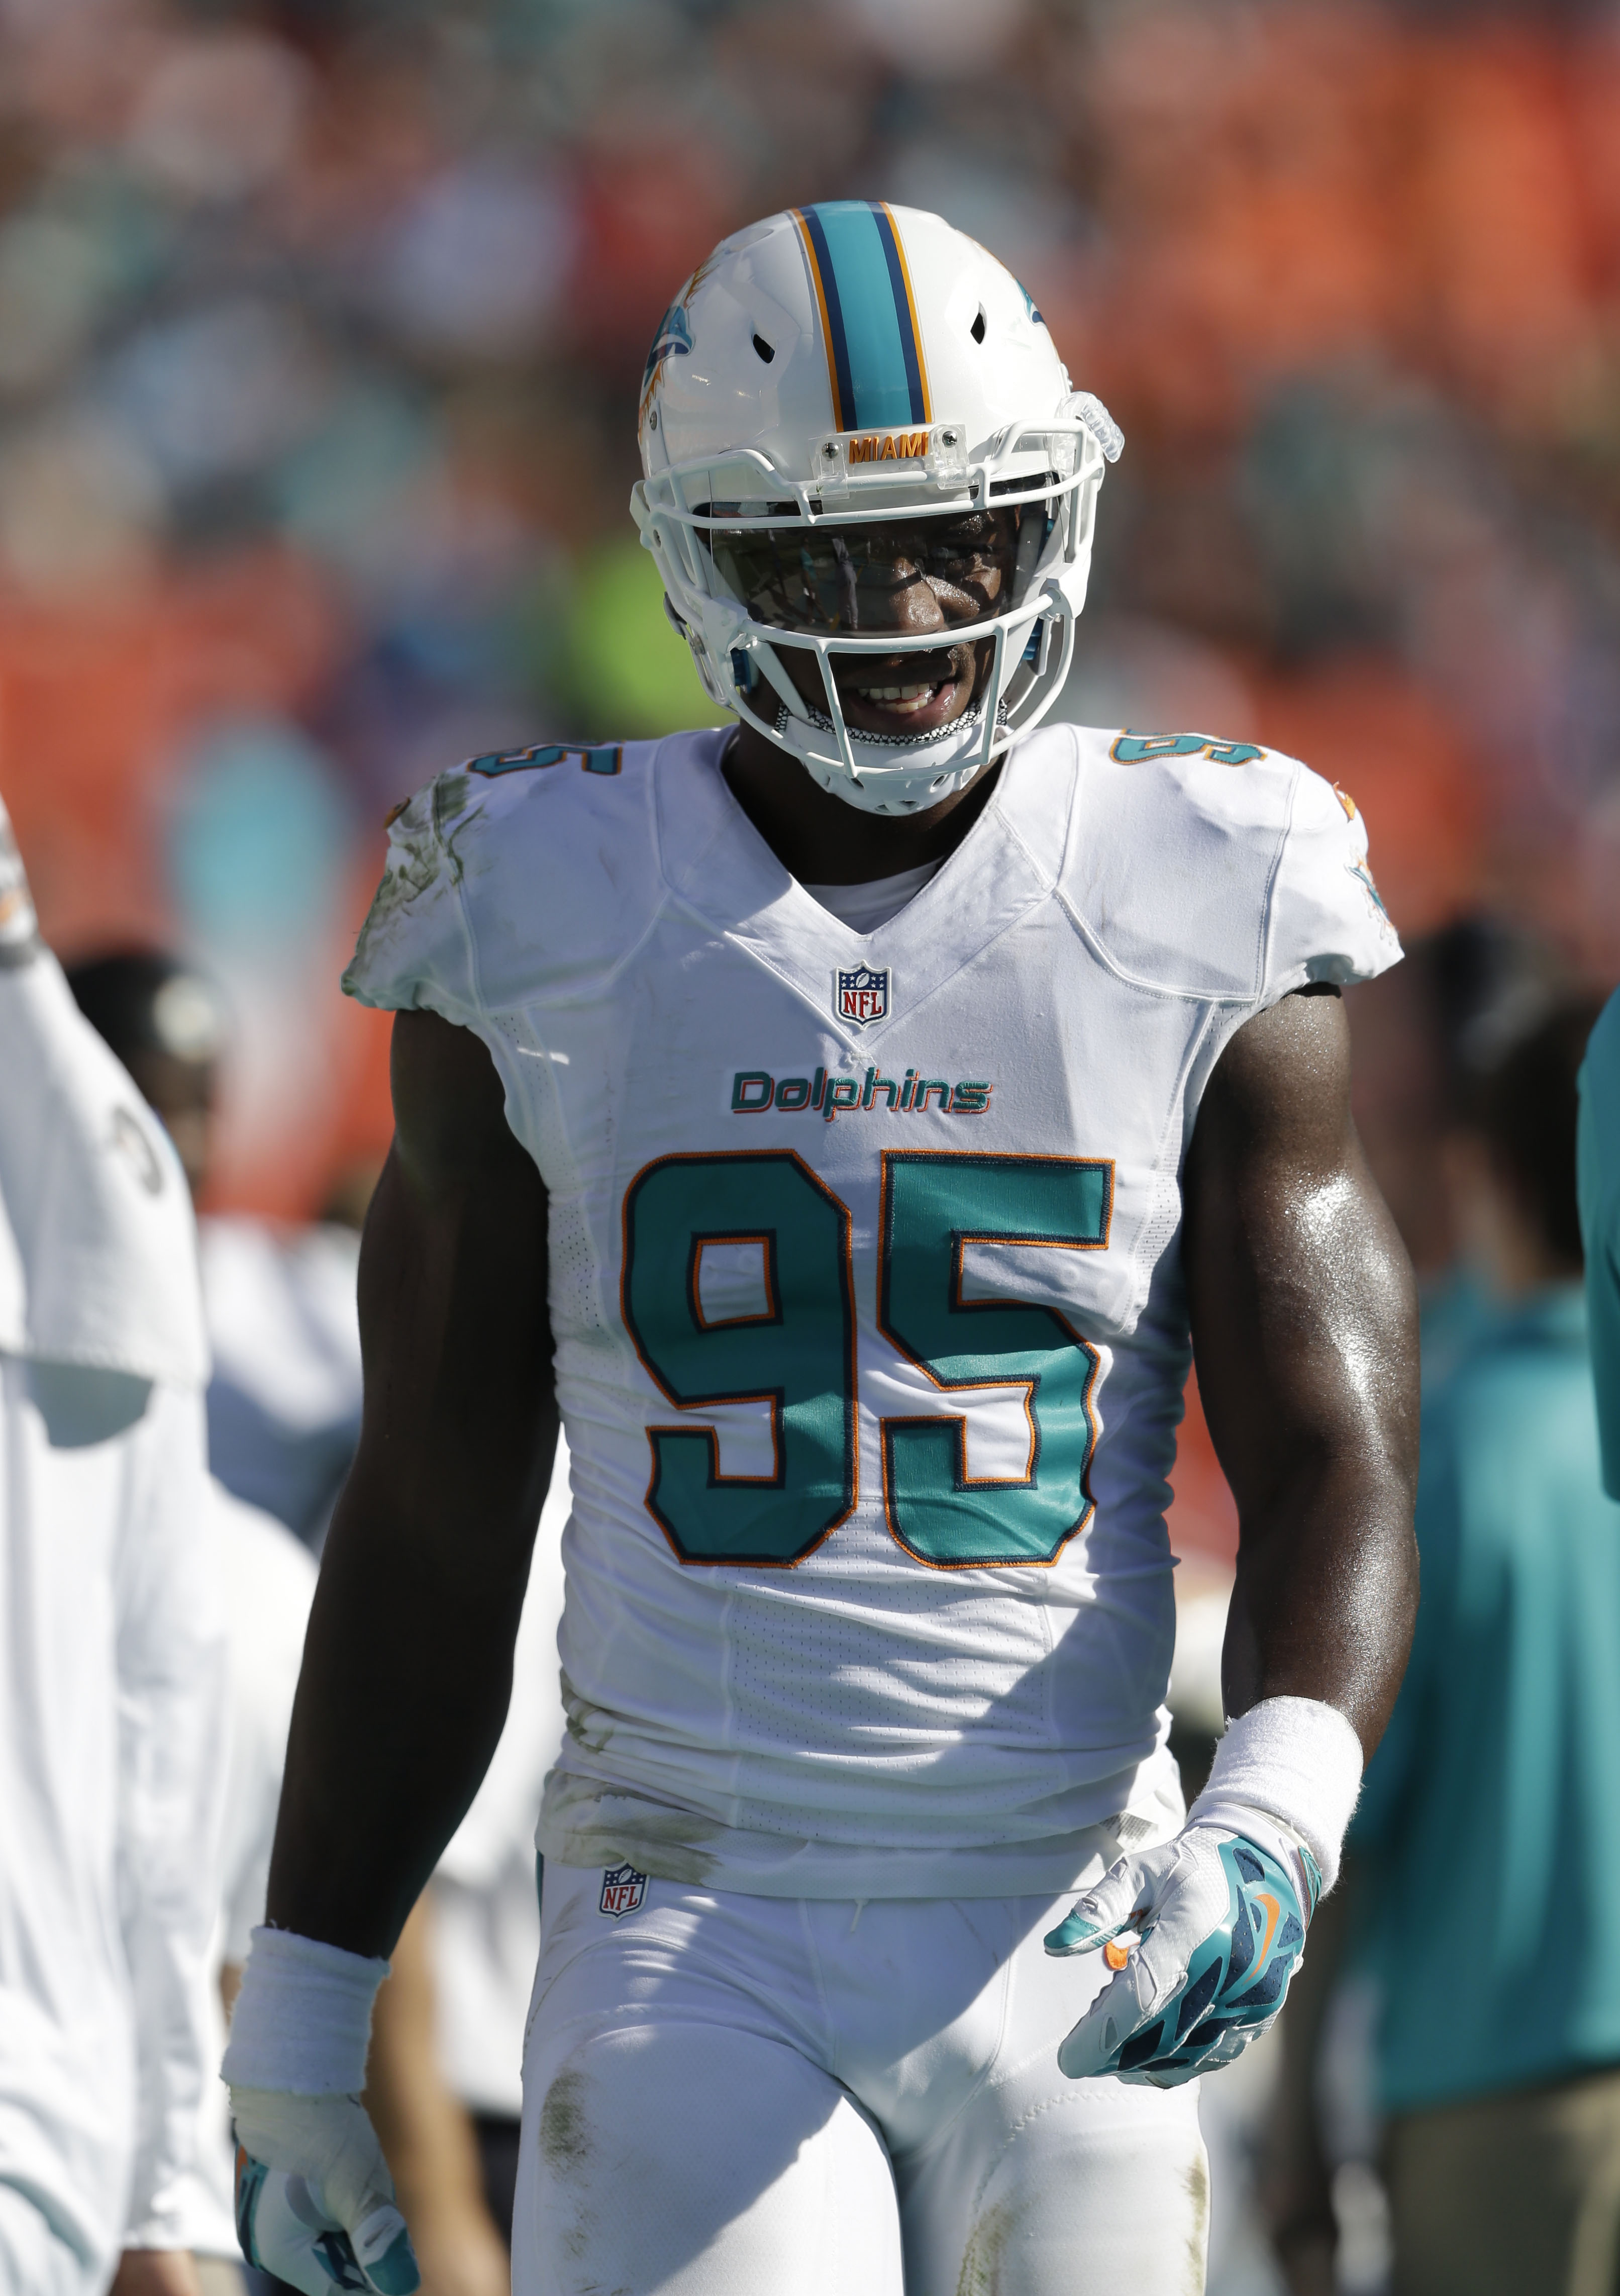 FILE - In this Sunday, Dec. 28, 2014 file photo, Miami Dolphins defensive end Dion Jordan (95) walks the sidelines during the first half of an NFL football game New York Jets in Miami Gardens, Fla. The Dolphins and the NFL announced Tuesday, April 28, 201